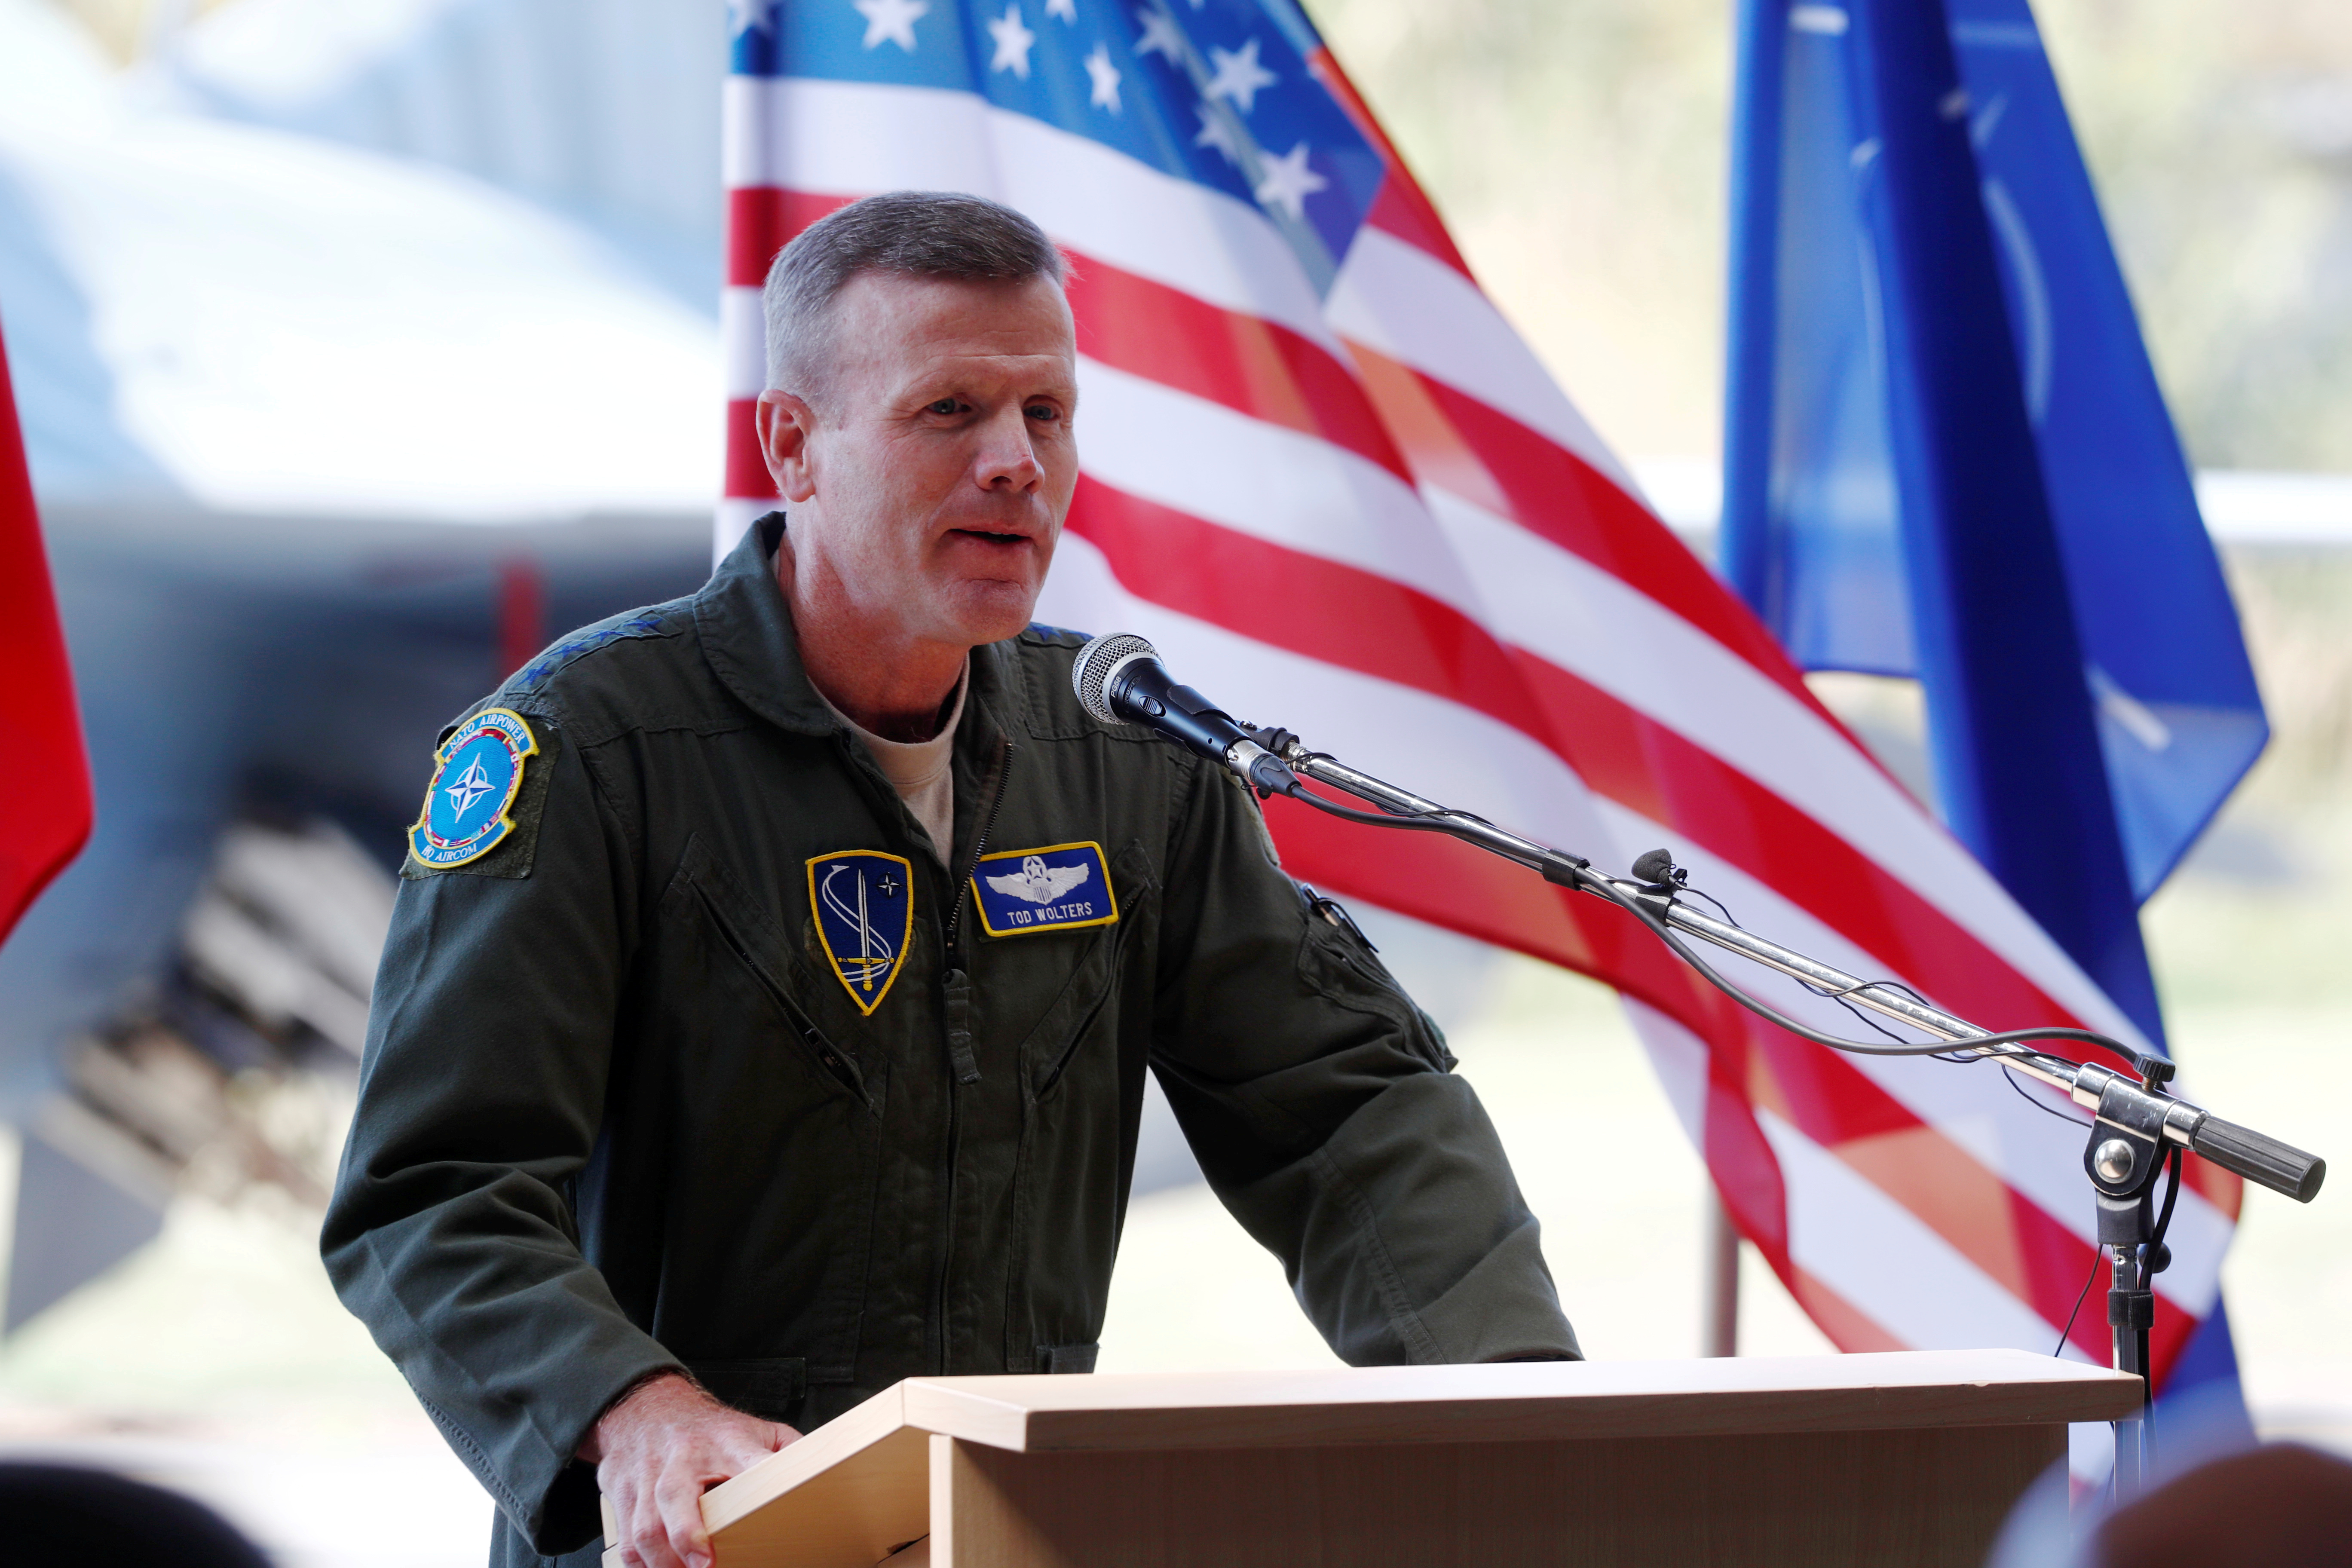 General Tod Wolters, then commander of U.S. Air Forces in Europe, speaks during NATO Baltic air policing mission takeover ceremony in Siauliai, Lithuania August 30, 2017. REUTERS/Ints Kalnins